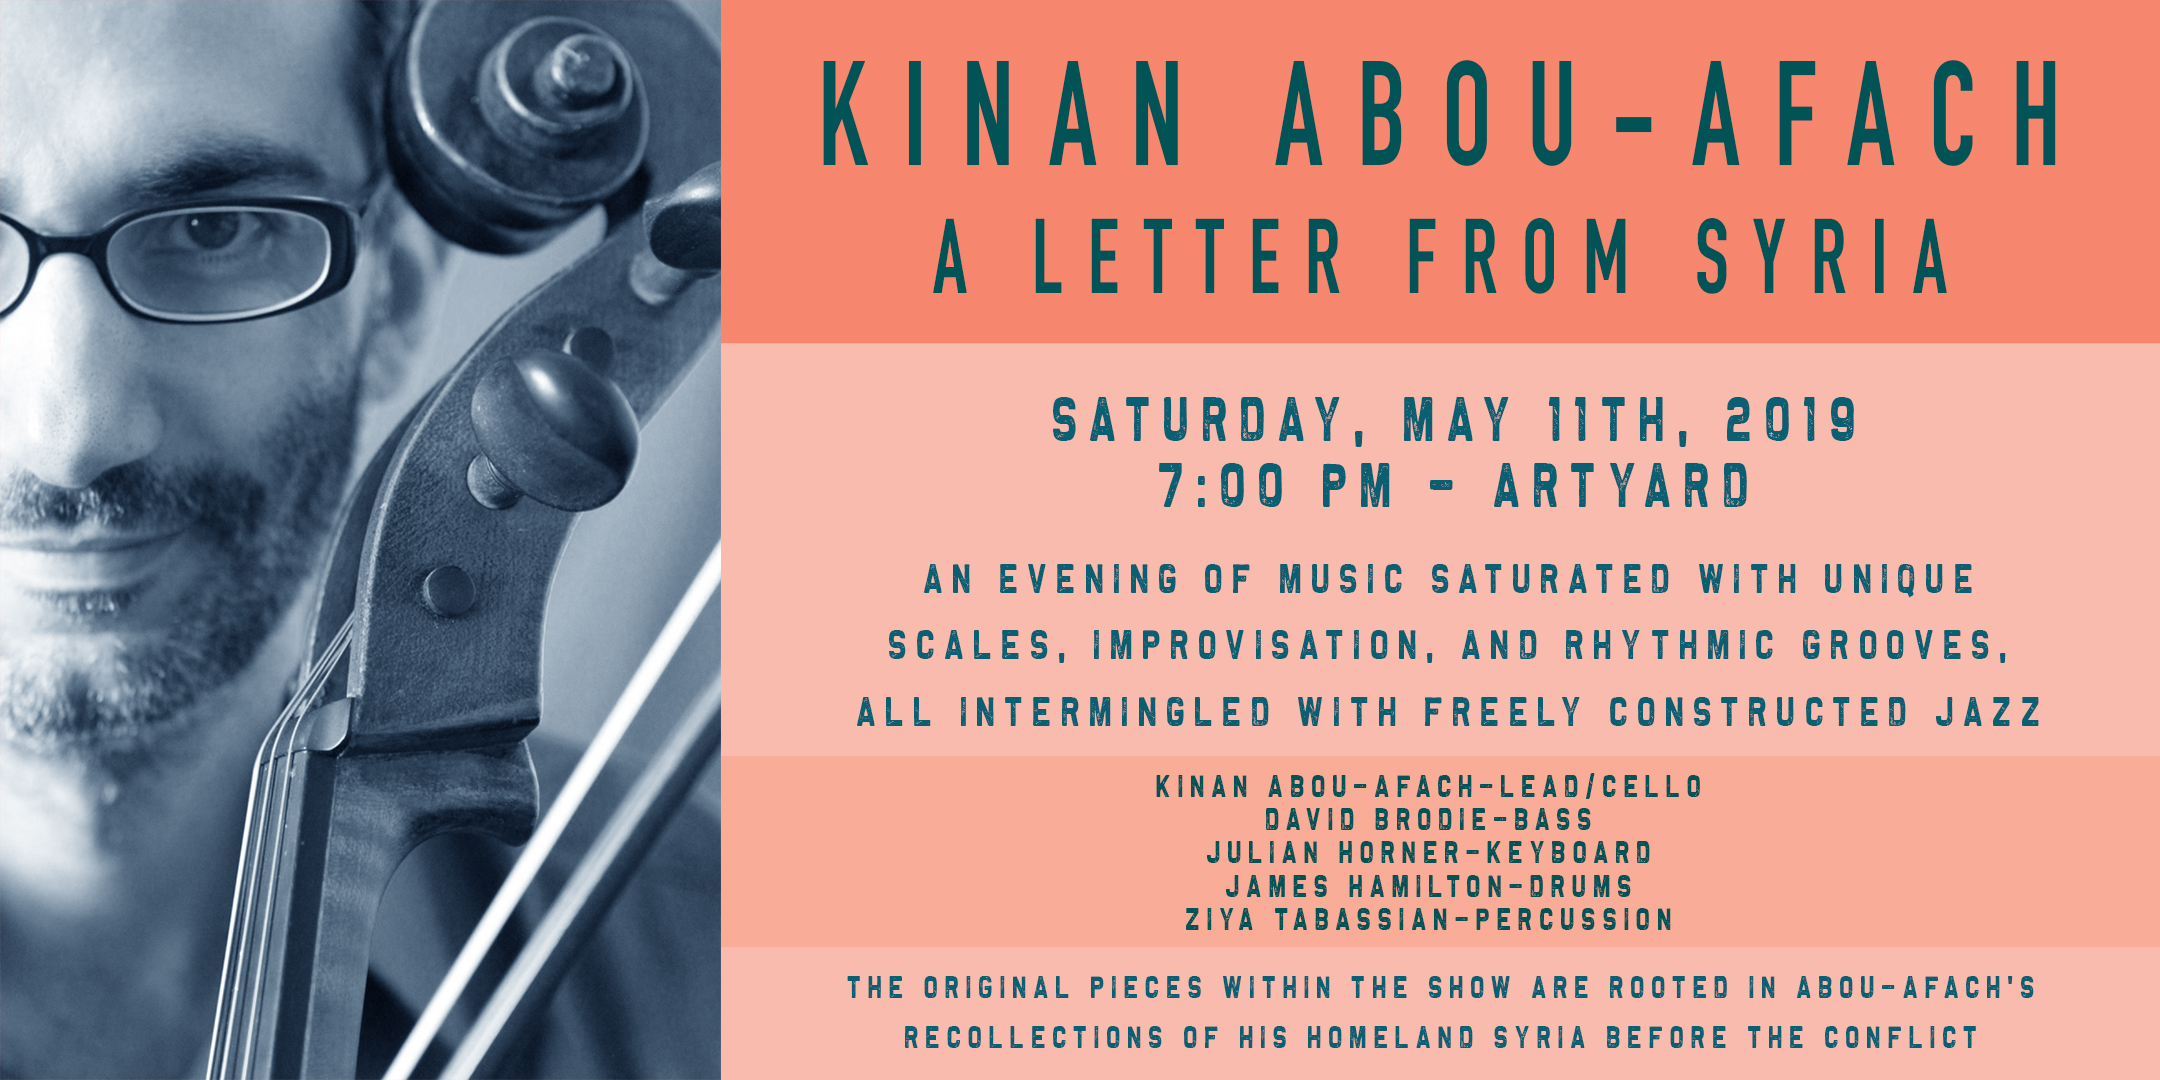 KINAN ABOU AFACH – A Letter from Syria. Concert. (May 11th, 2019)